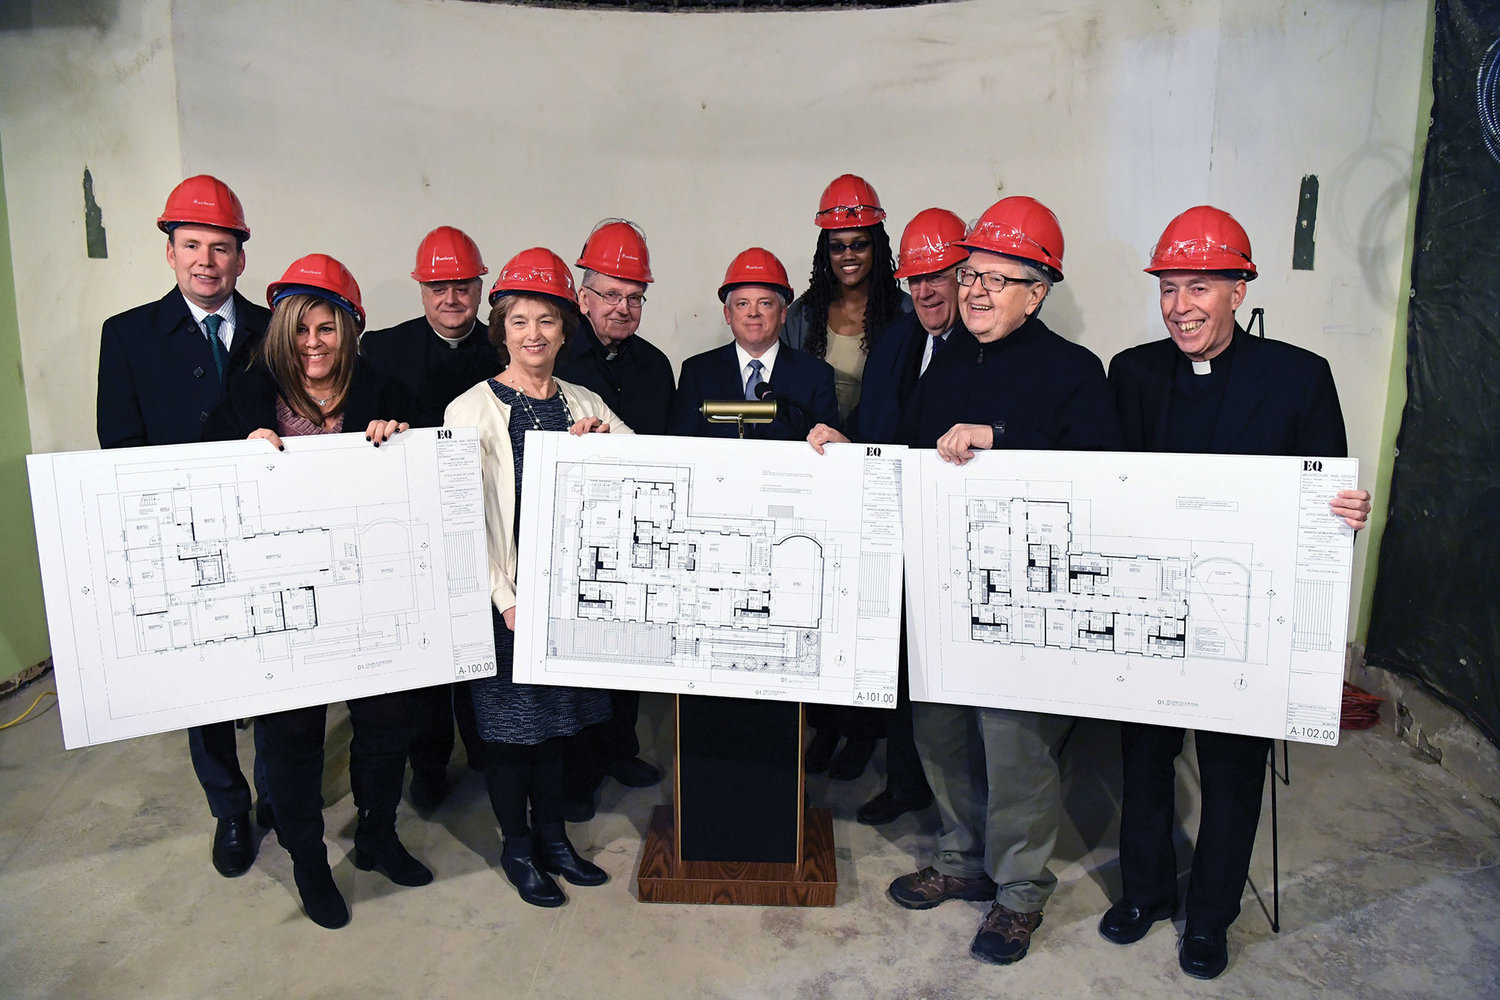 Guests hold up floor plans for ArchCare at St. Teresa. Standing from left are State Assemblyman Michael Cusick; Kim Marselle, a representative from State Senator Andrew Lanza's office; Father Joseph LaMorte, vicar general and chancellor of the archdiocese; Kate Rooney, ArchCare board member; Msgr. Peter Finn, dean for Staten Island; Scott LaRue, president and CEO of ArchCare; Yvette Fall, a representative from U.S. Rep. Max Rose's office; Thomas Alberto, ArchCare board member; and Msgr. William Belford, pastor of St. Teresa parish.